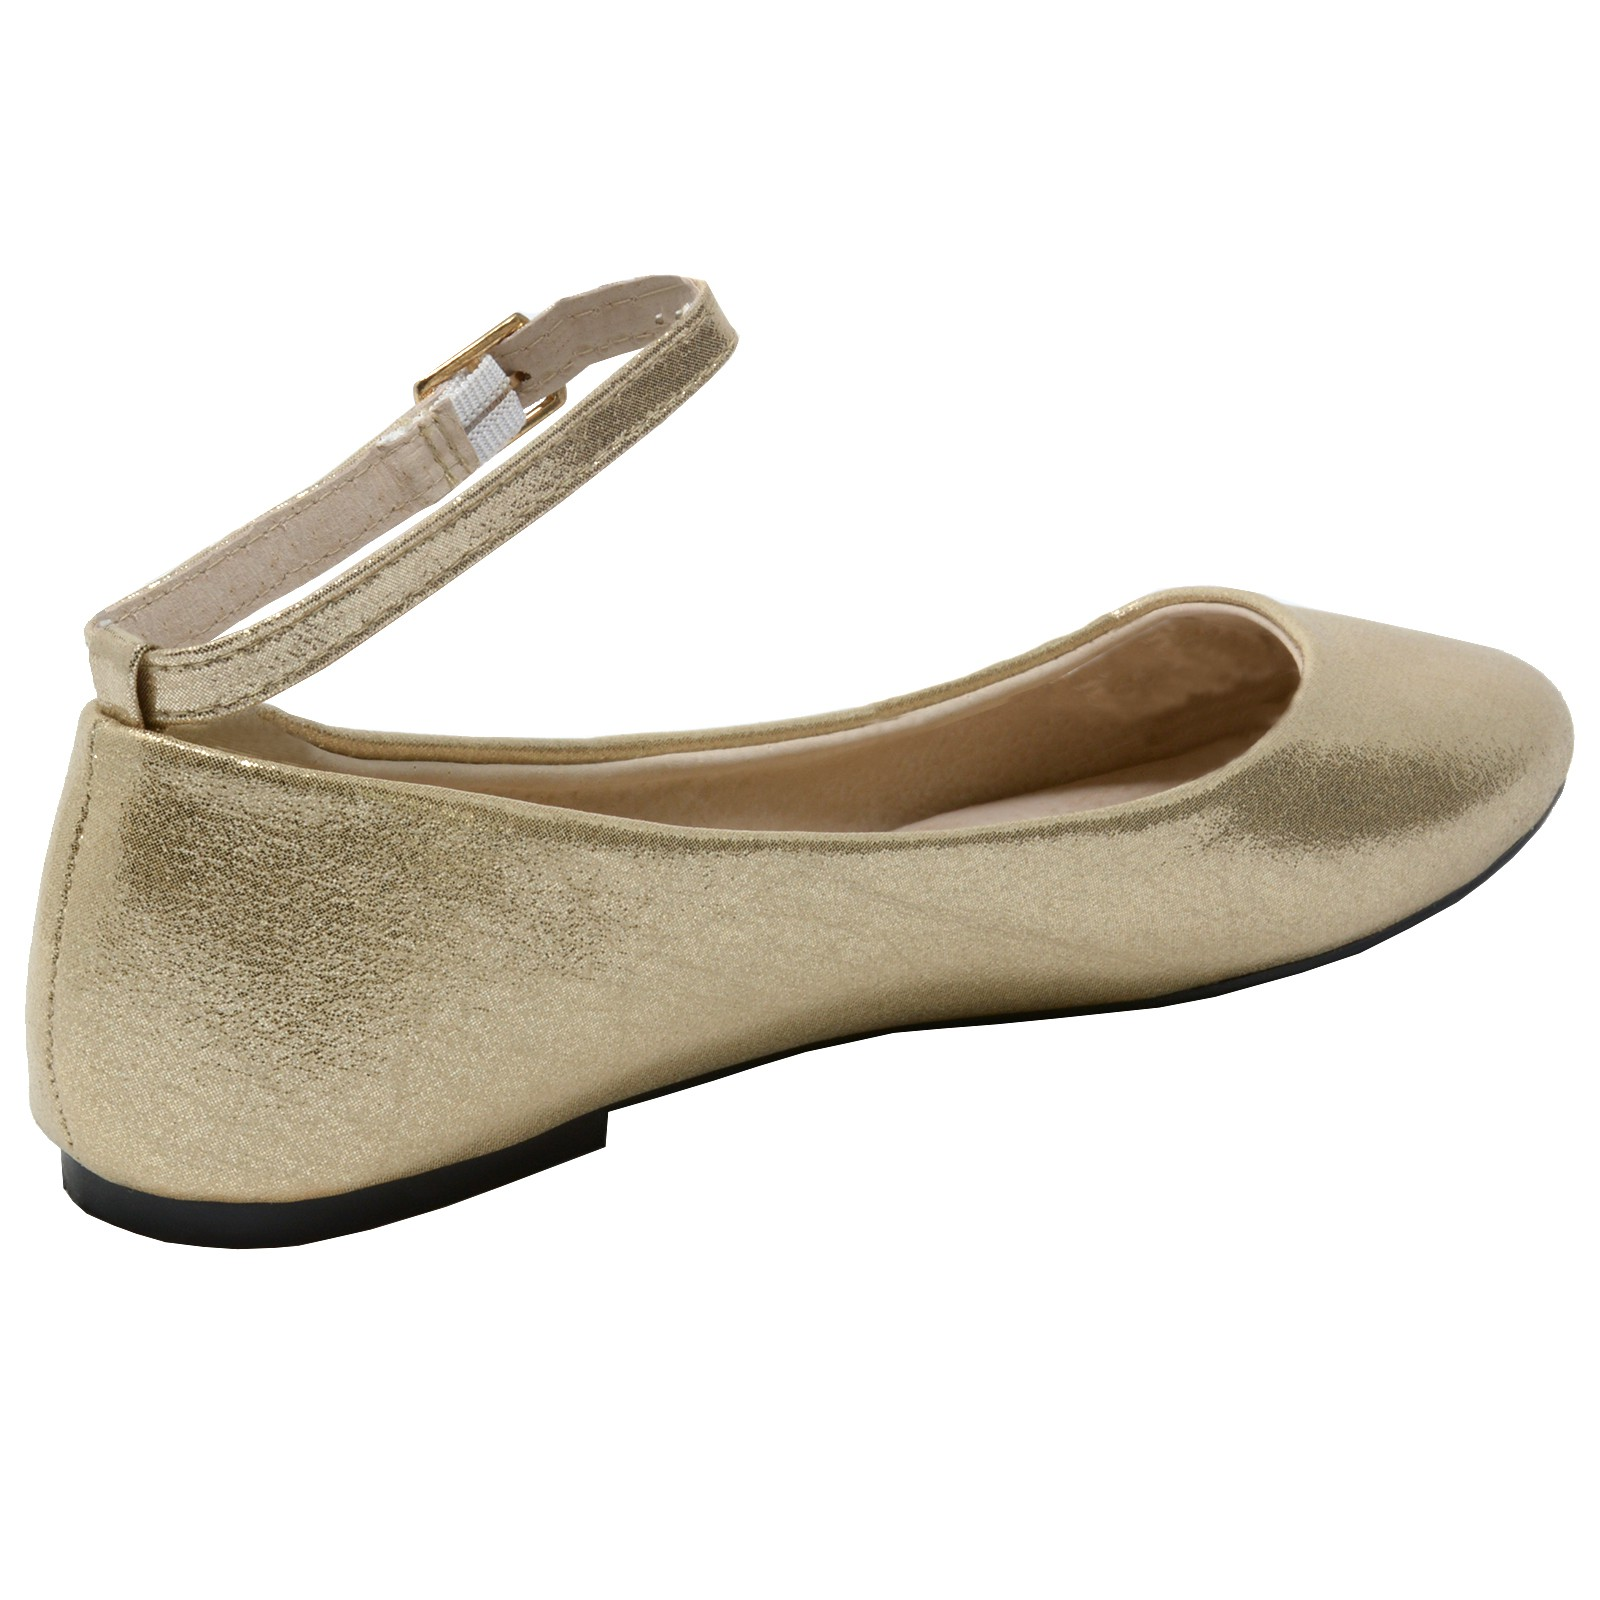 Enjoy free shipping and easy returns every day at Kohl's. Find great deals on Womens Ballet Slippers at Kohl's today!